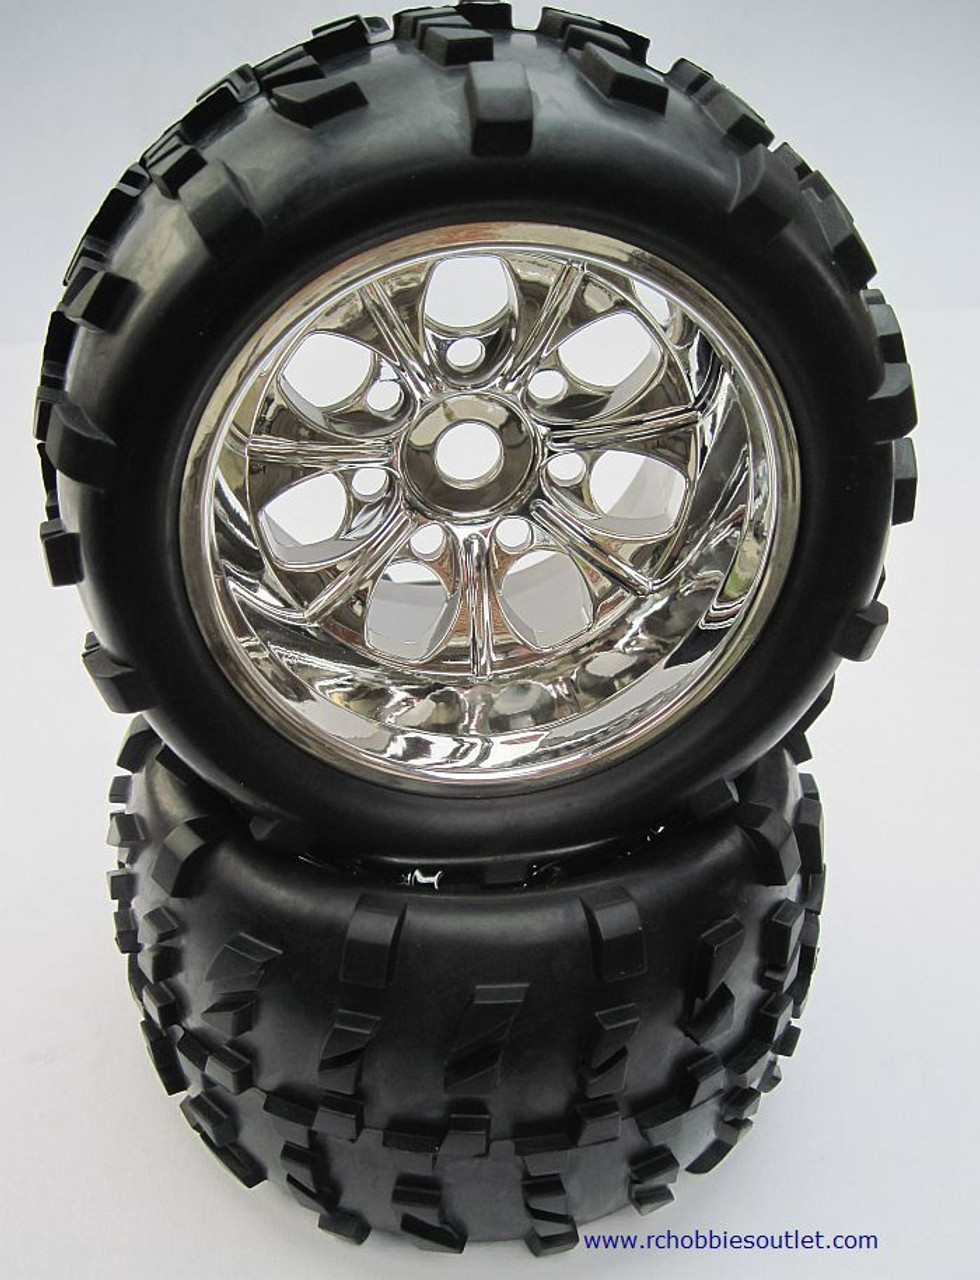 62012 1/8 SCALE TRUCK WHEEL RIMS TIRES COMPLETE 2PC